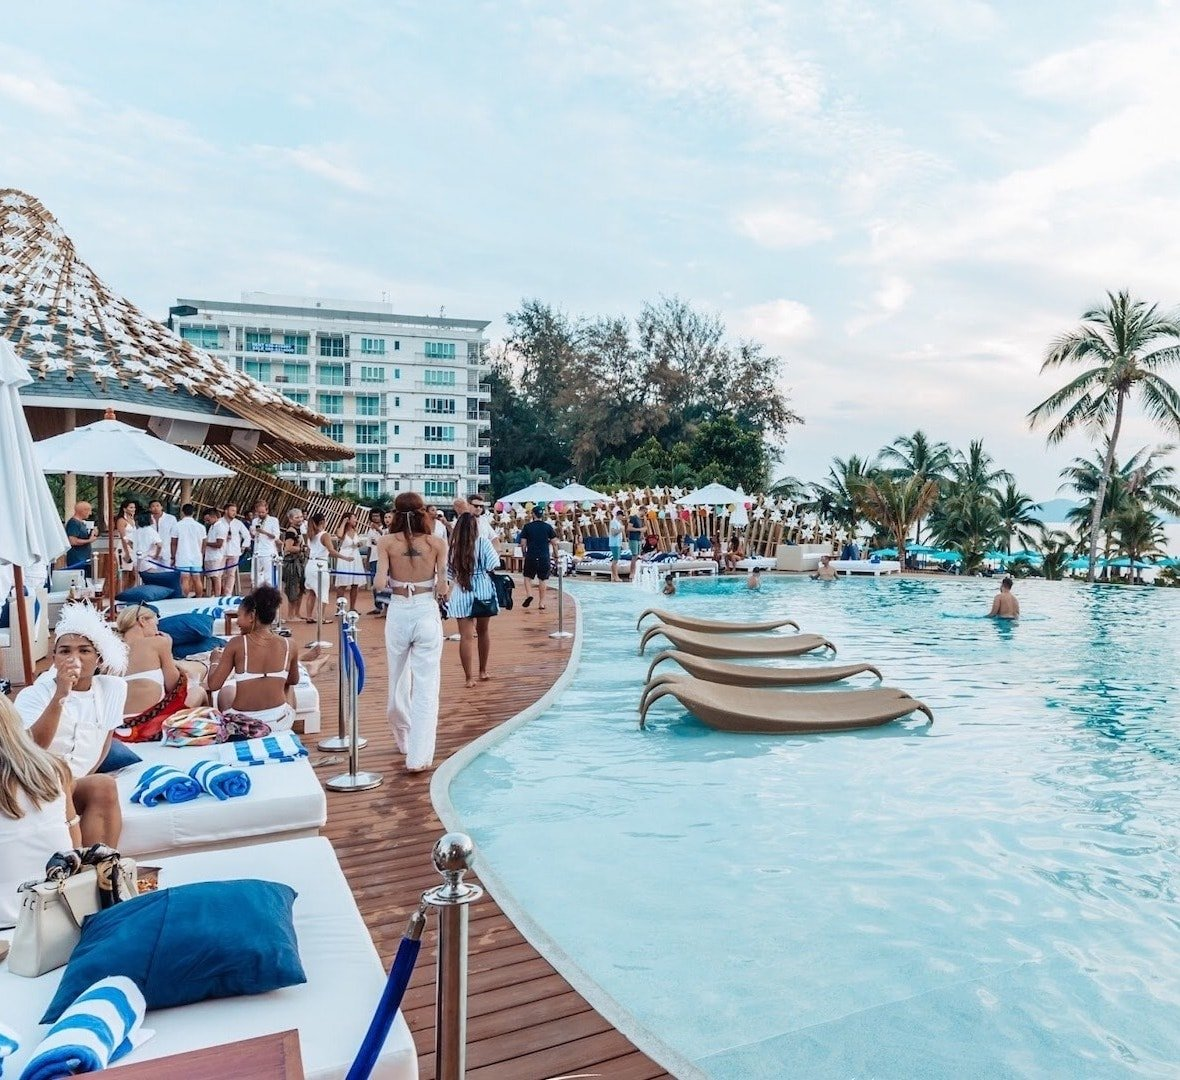 luxury pool party in Pattaya